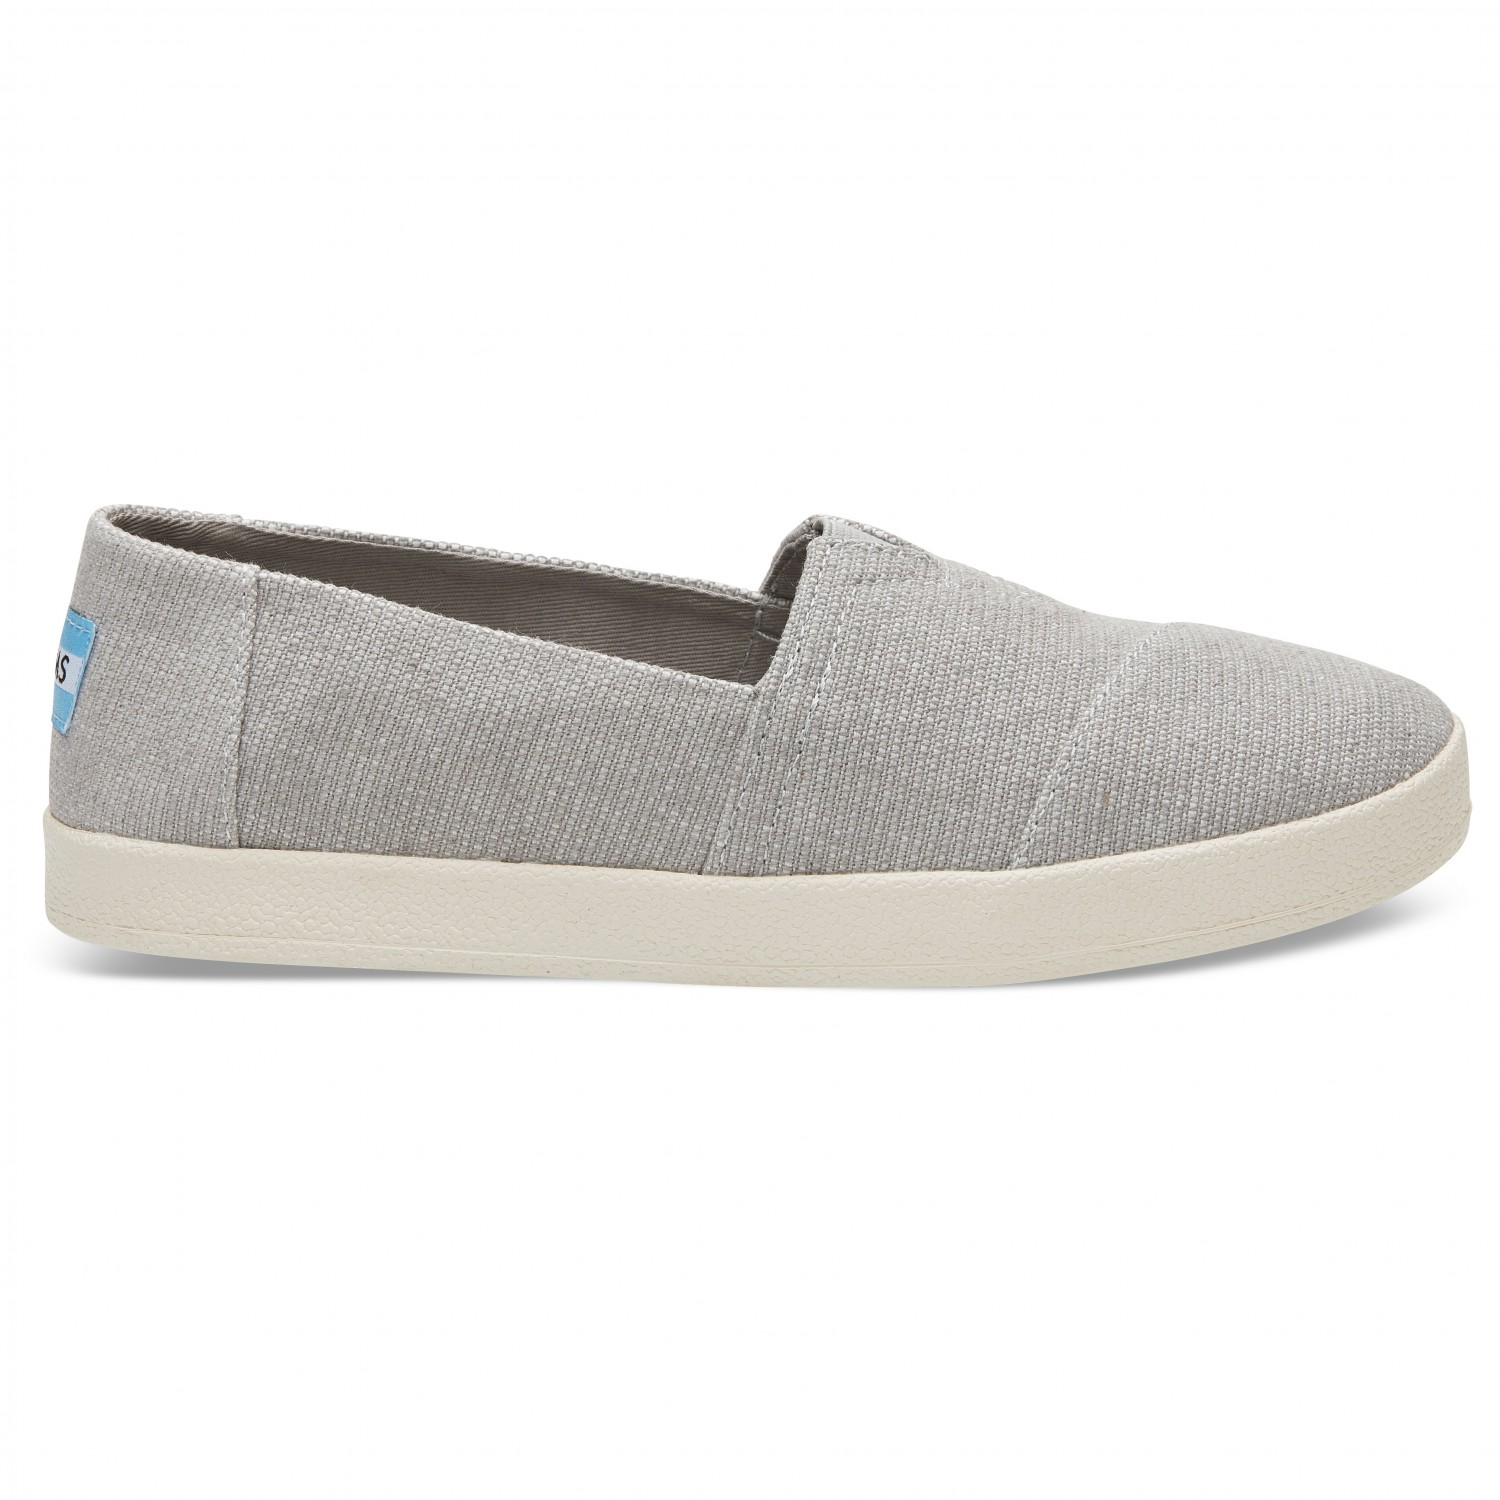 sale retailer 2bb53 b6fac TOMS - Women's Avalon Slip-On - Sneaker - Black Coated Canvas | 6 (US)